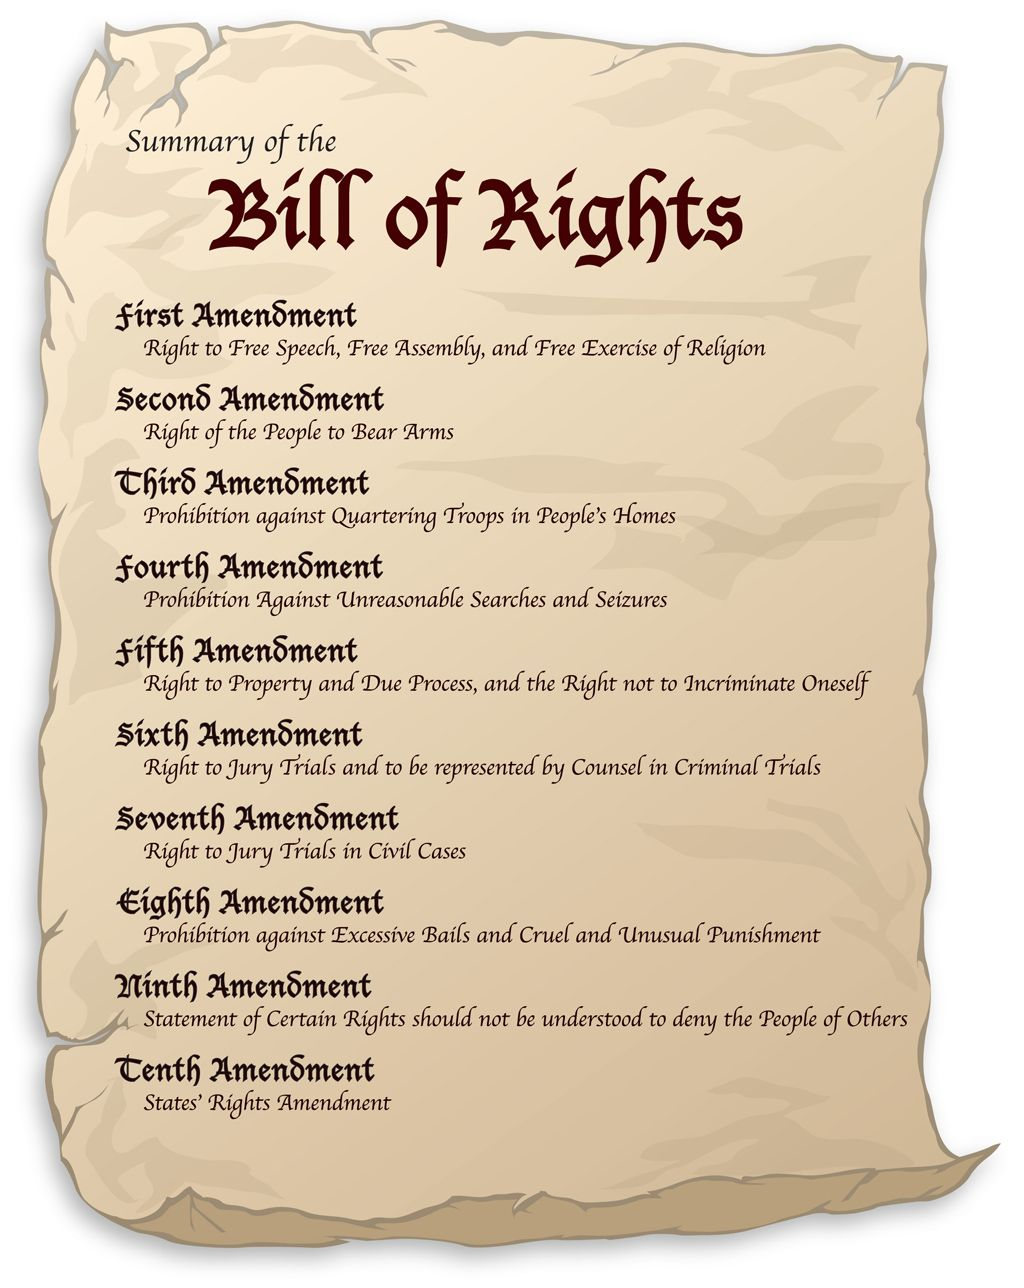 Figure Replicates The Bill Of Rights Scroll And Lists The